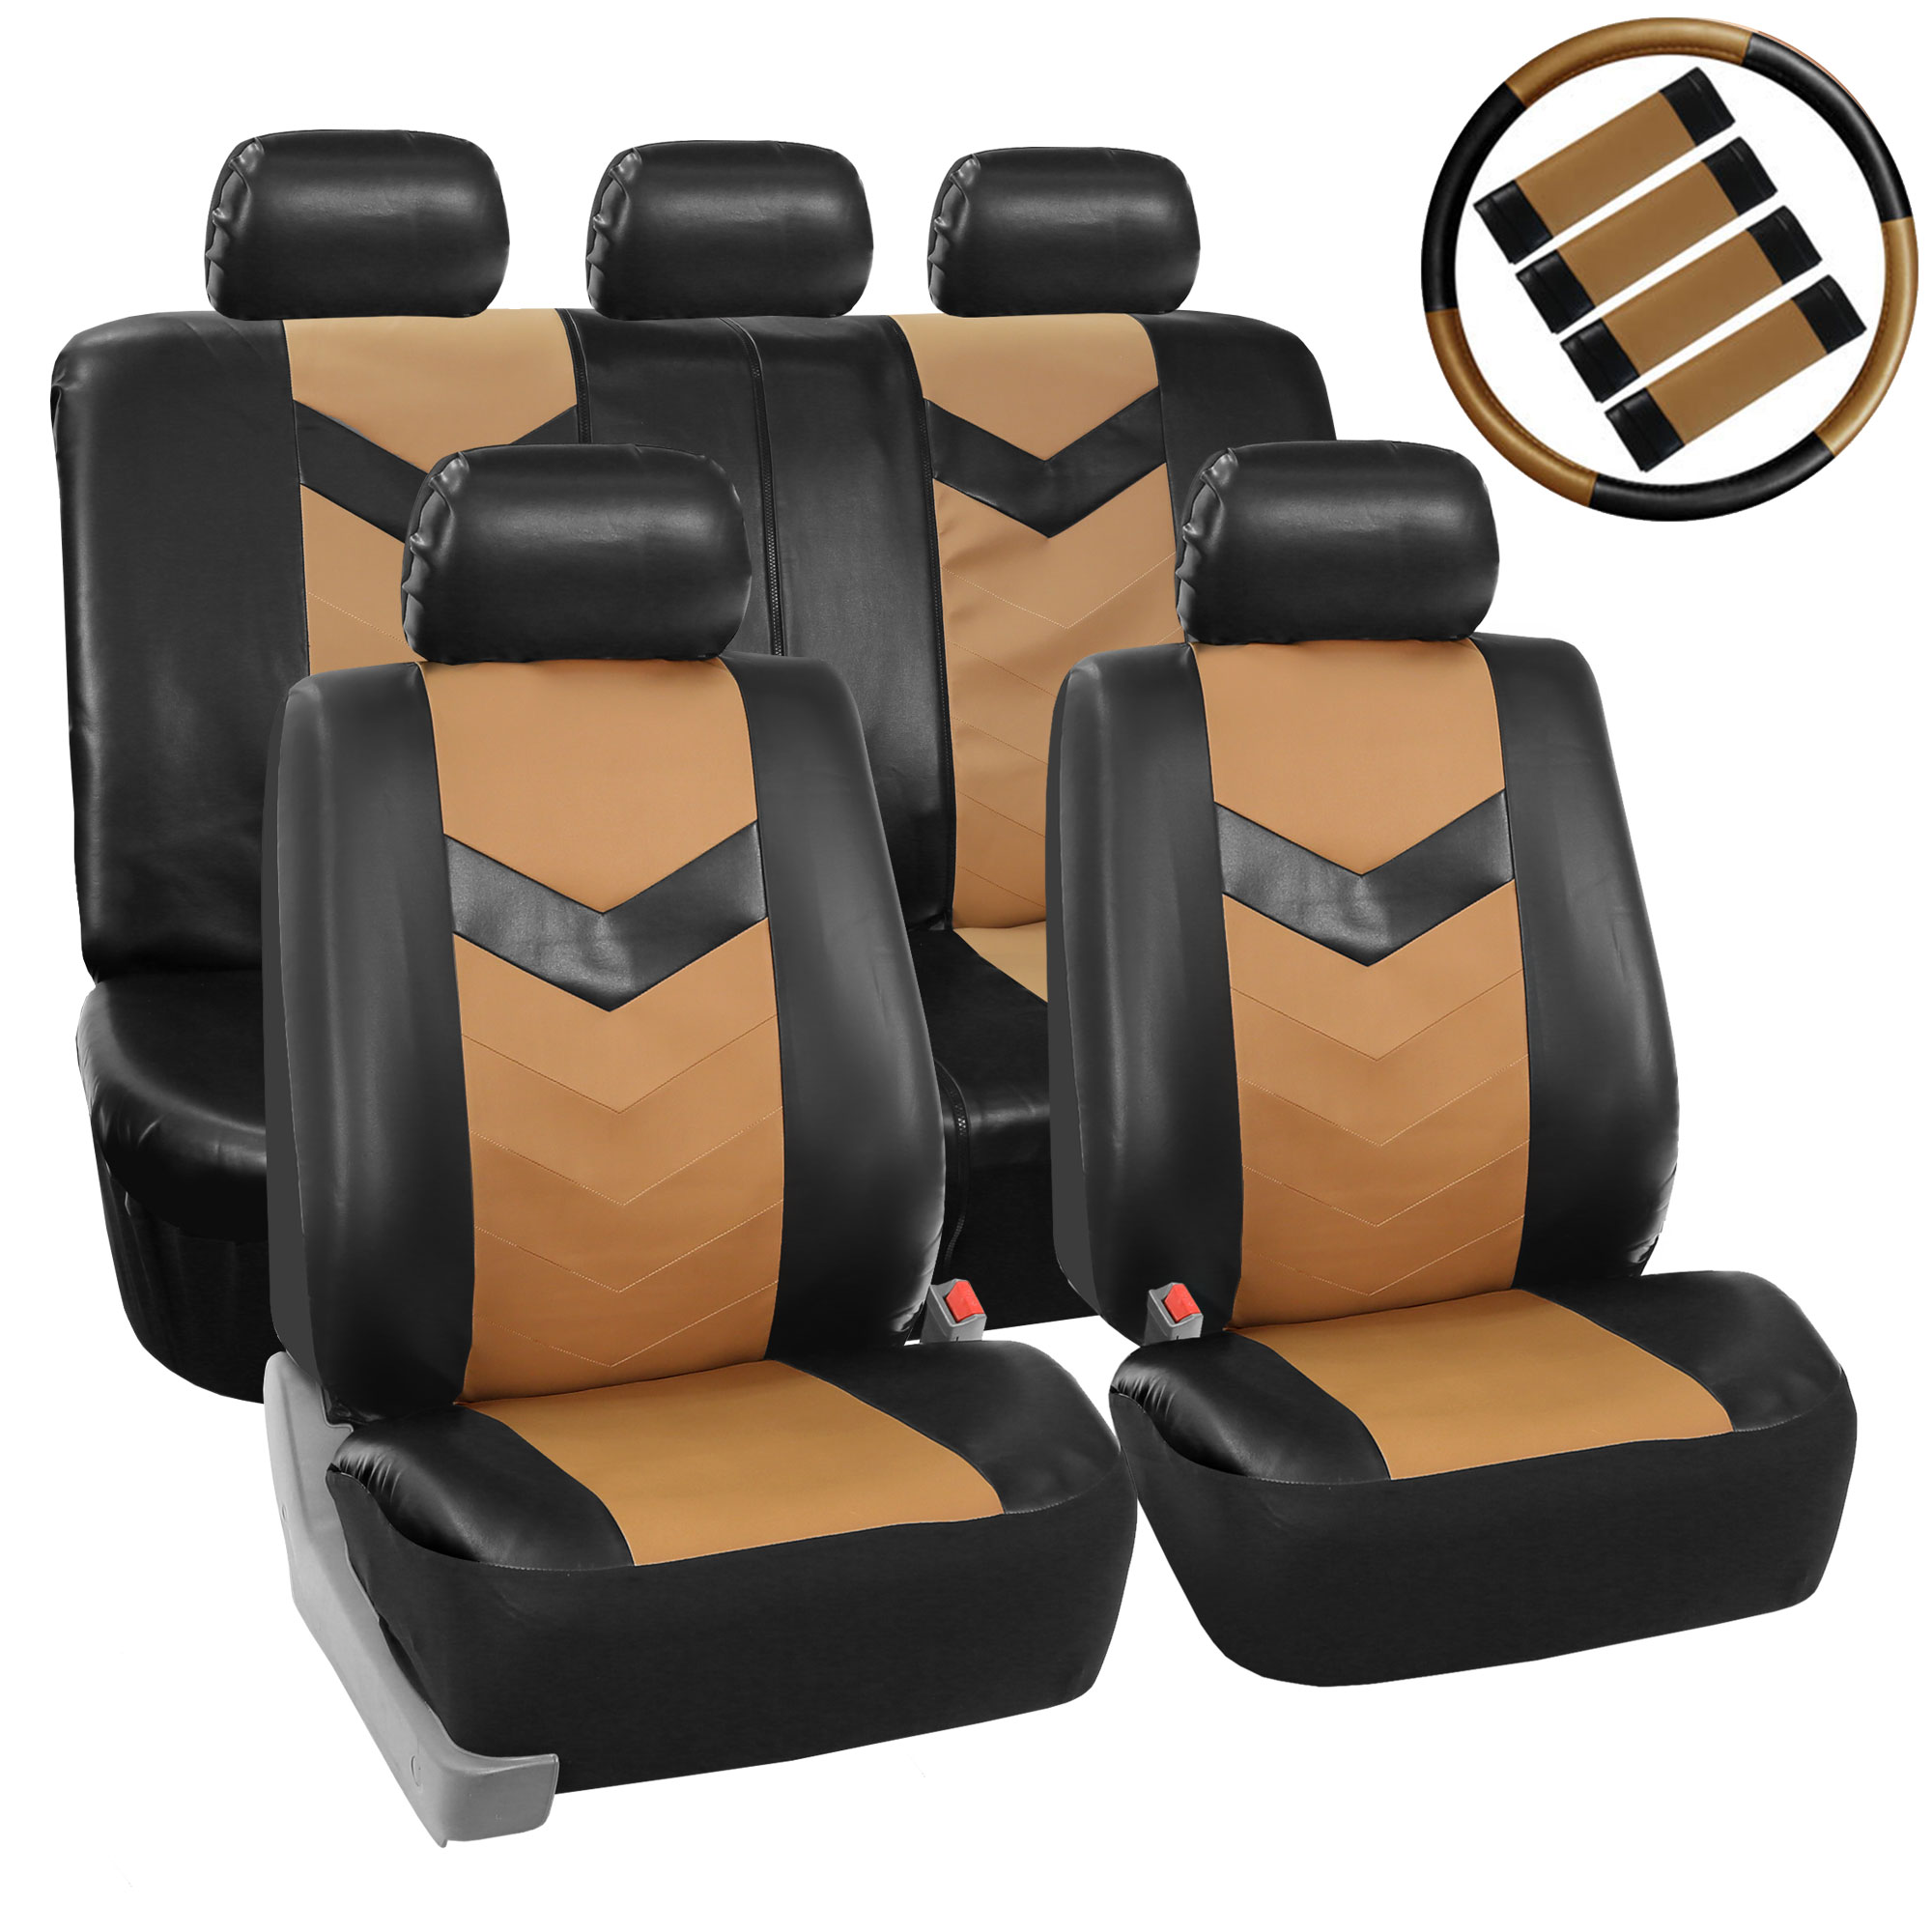 Faux Leather Seat Cover Full Set - Combo Set - Tan / Black PU021tanblack115COMBO2